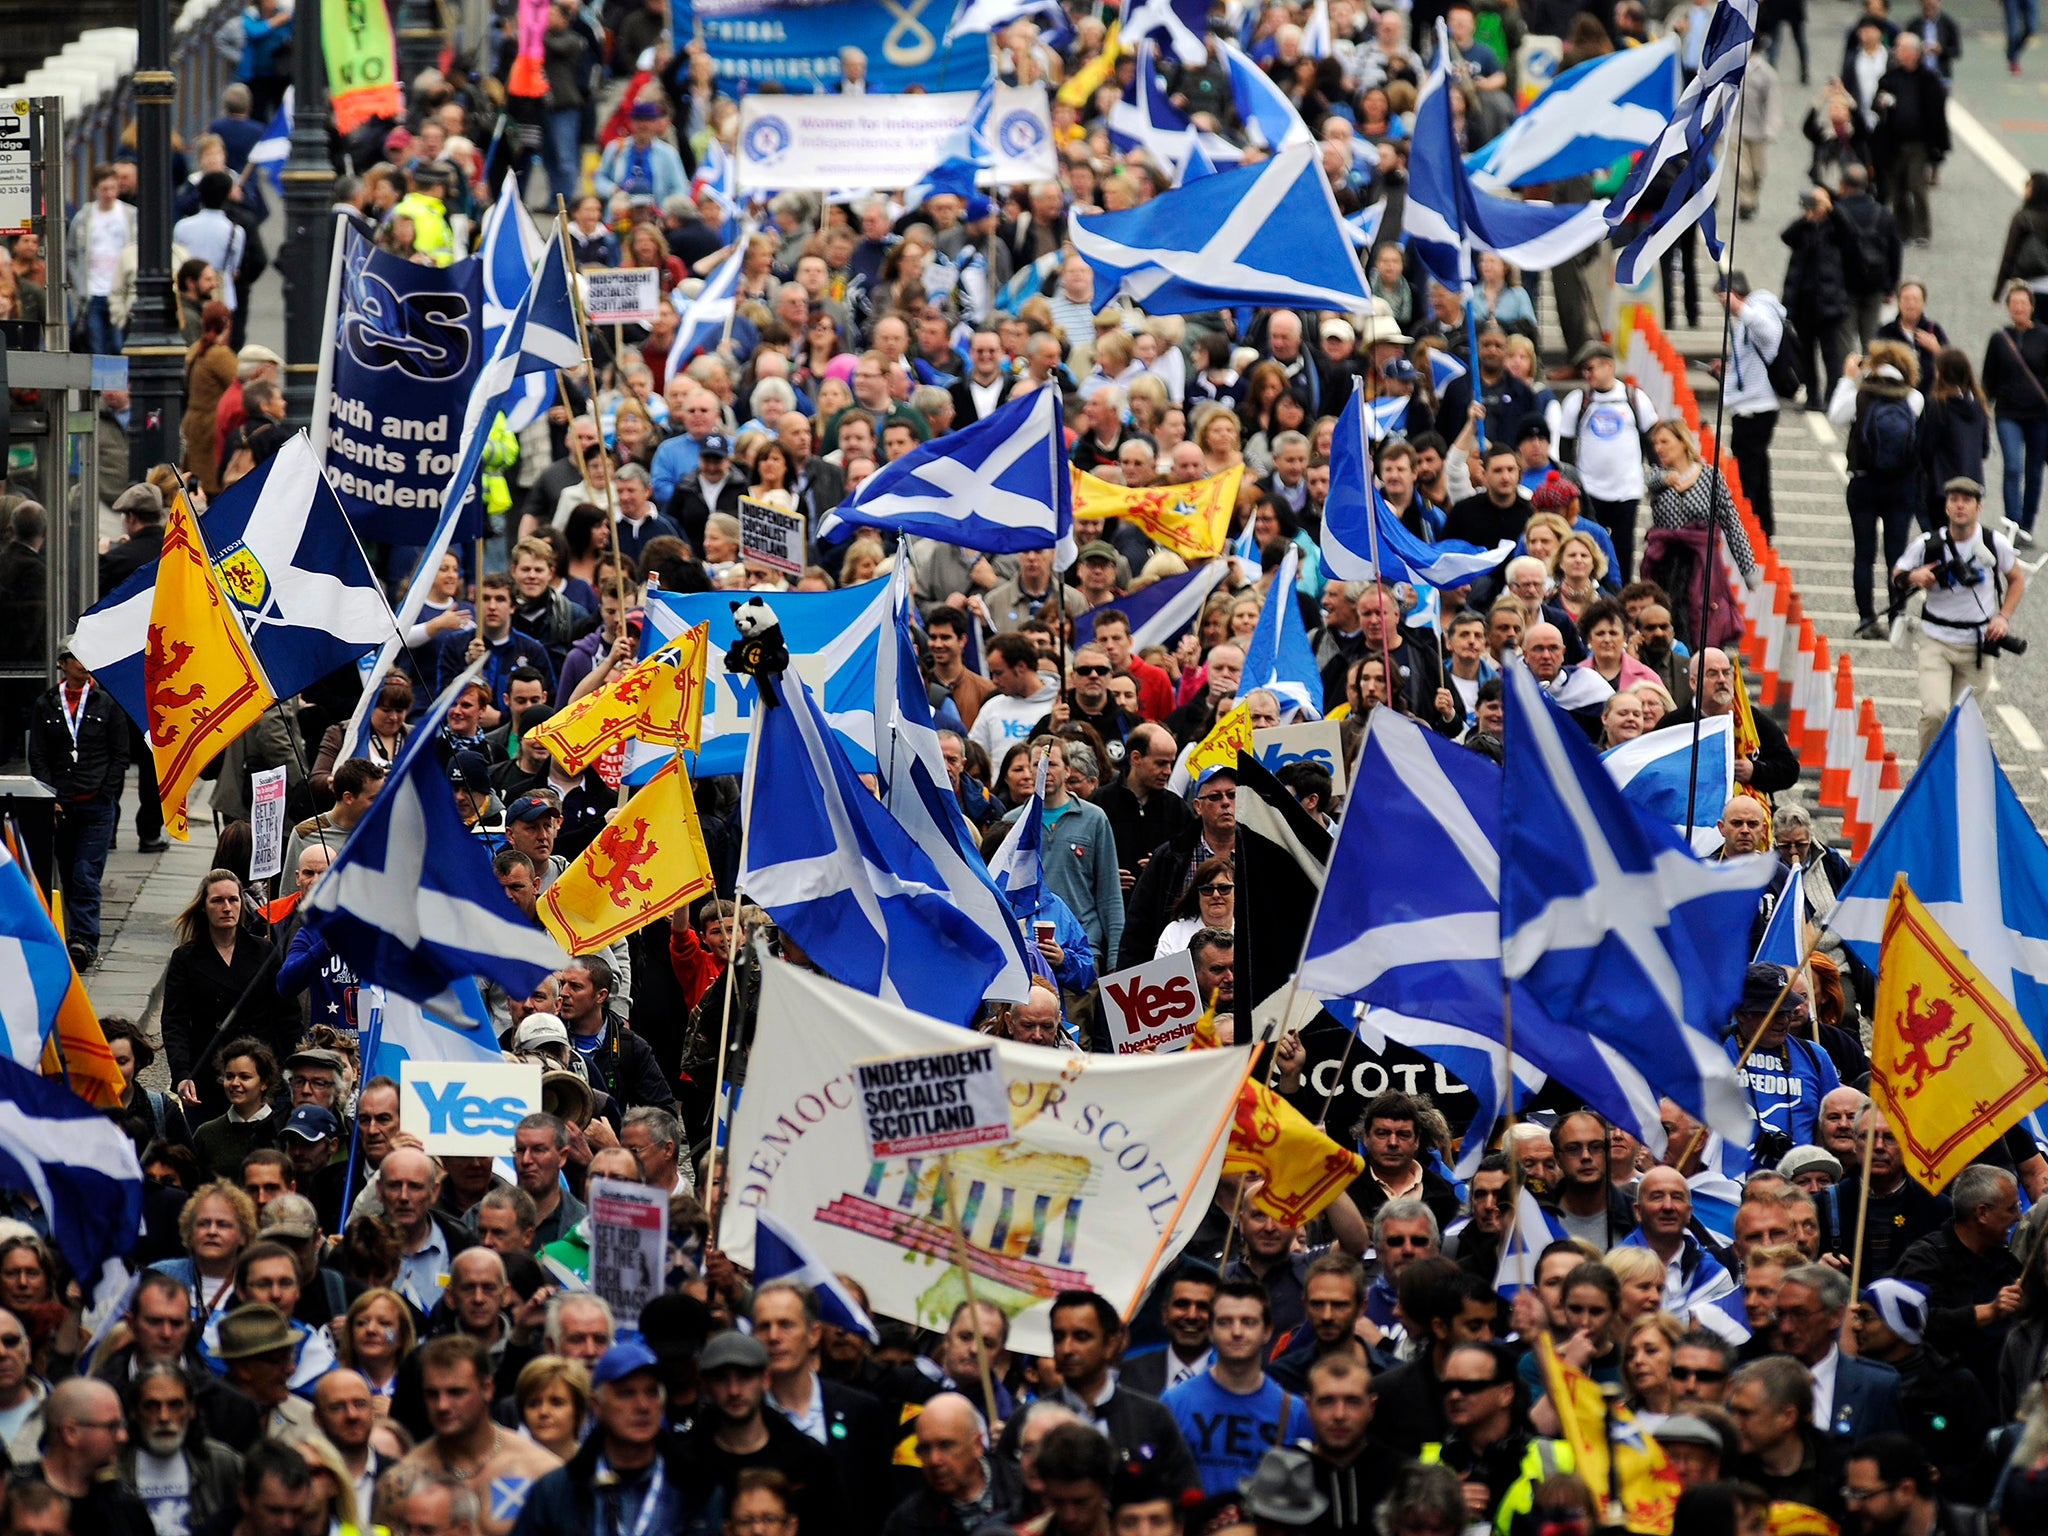 Pro_independence_rally-v2.jpg